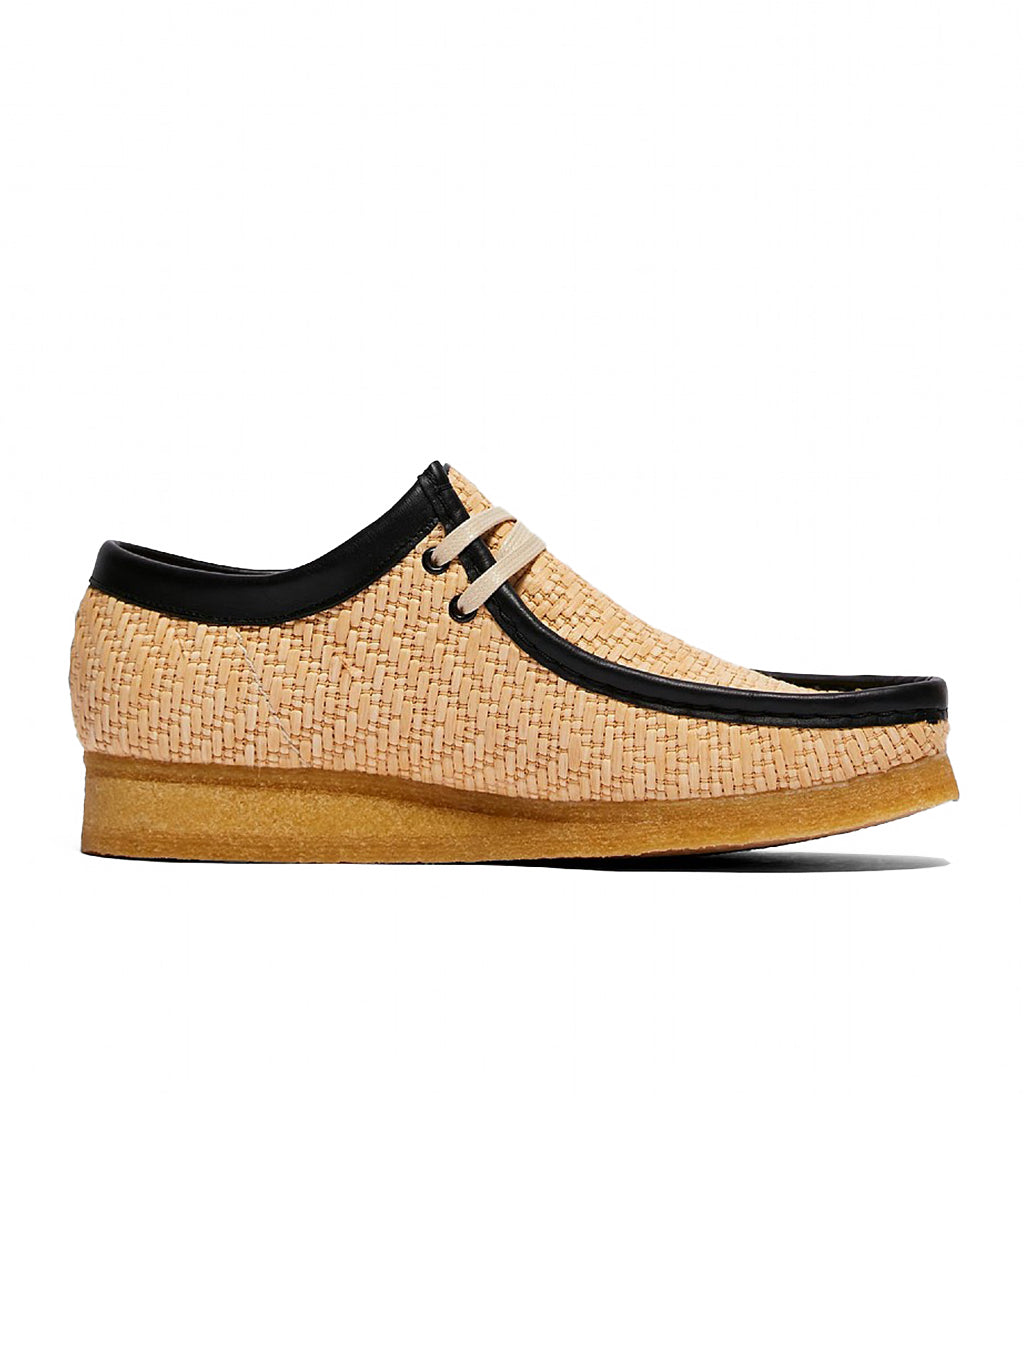 Brown & Black Raffia Wallabee Shoes